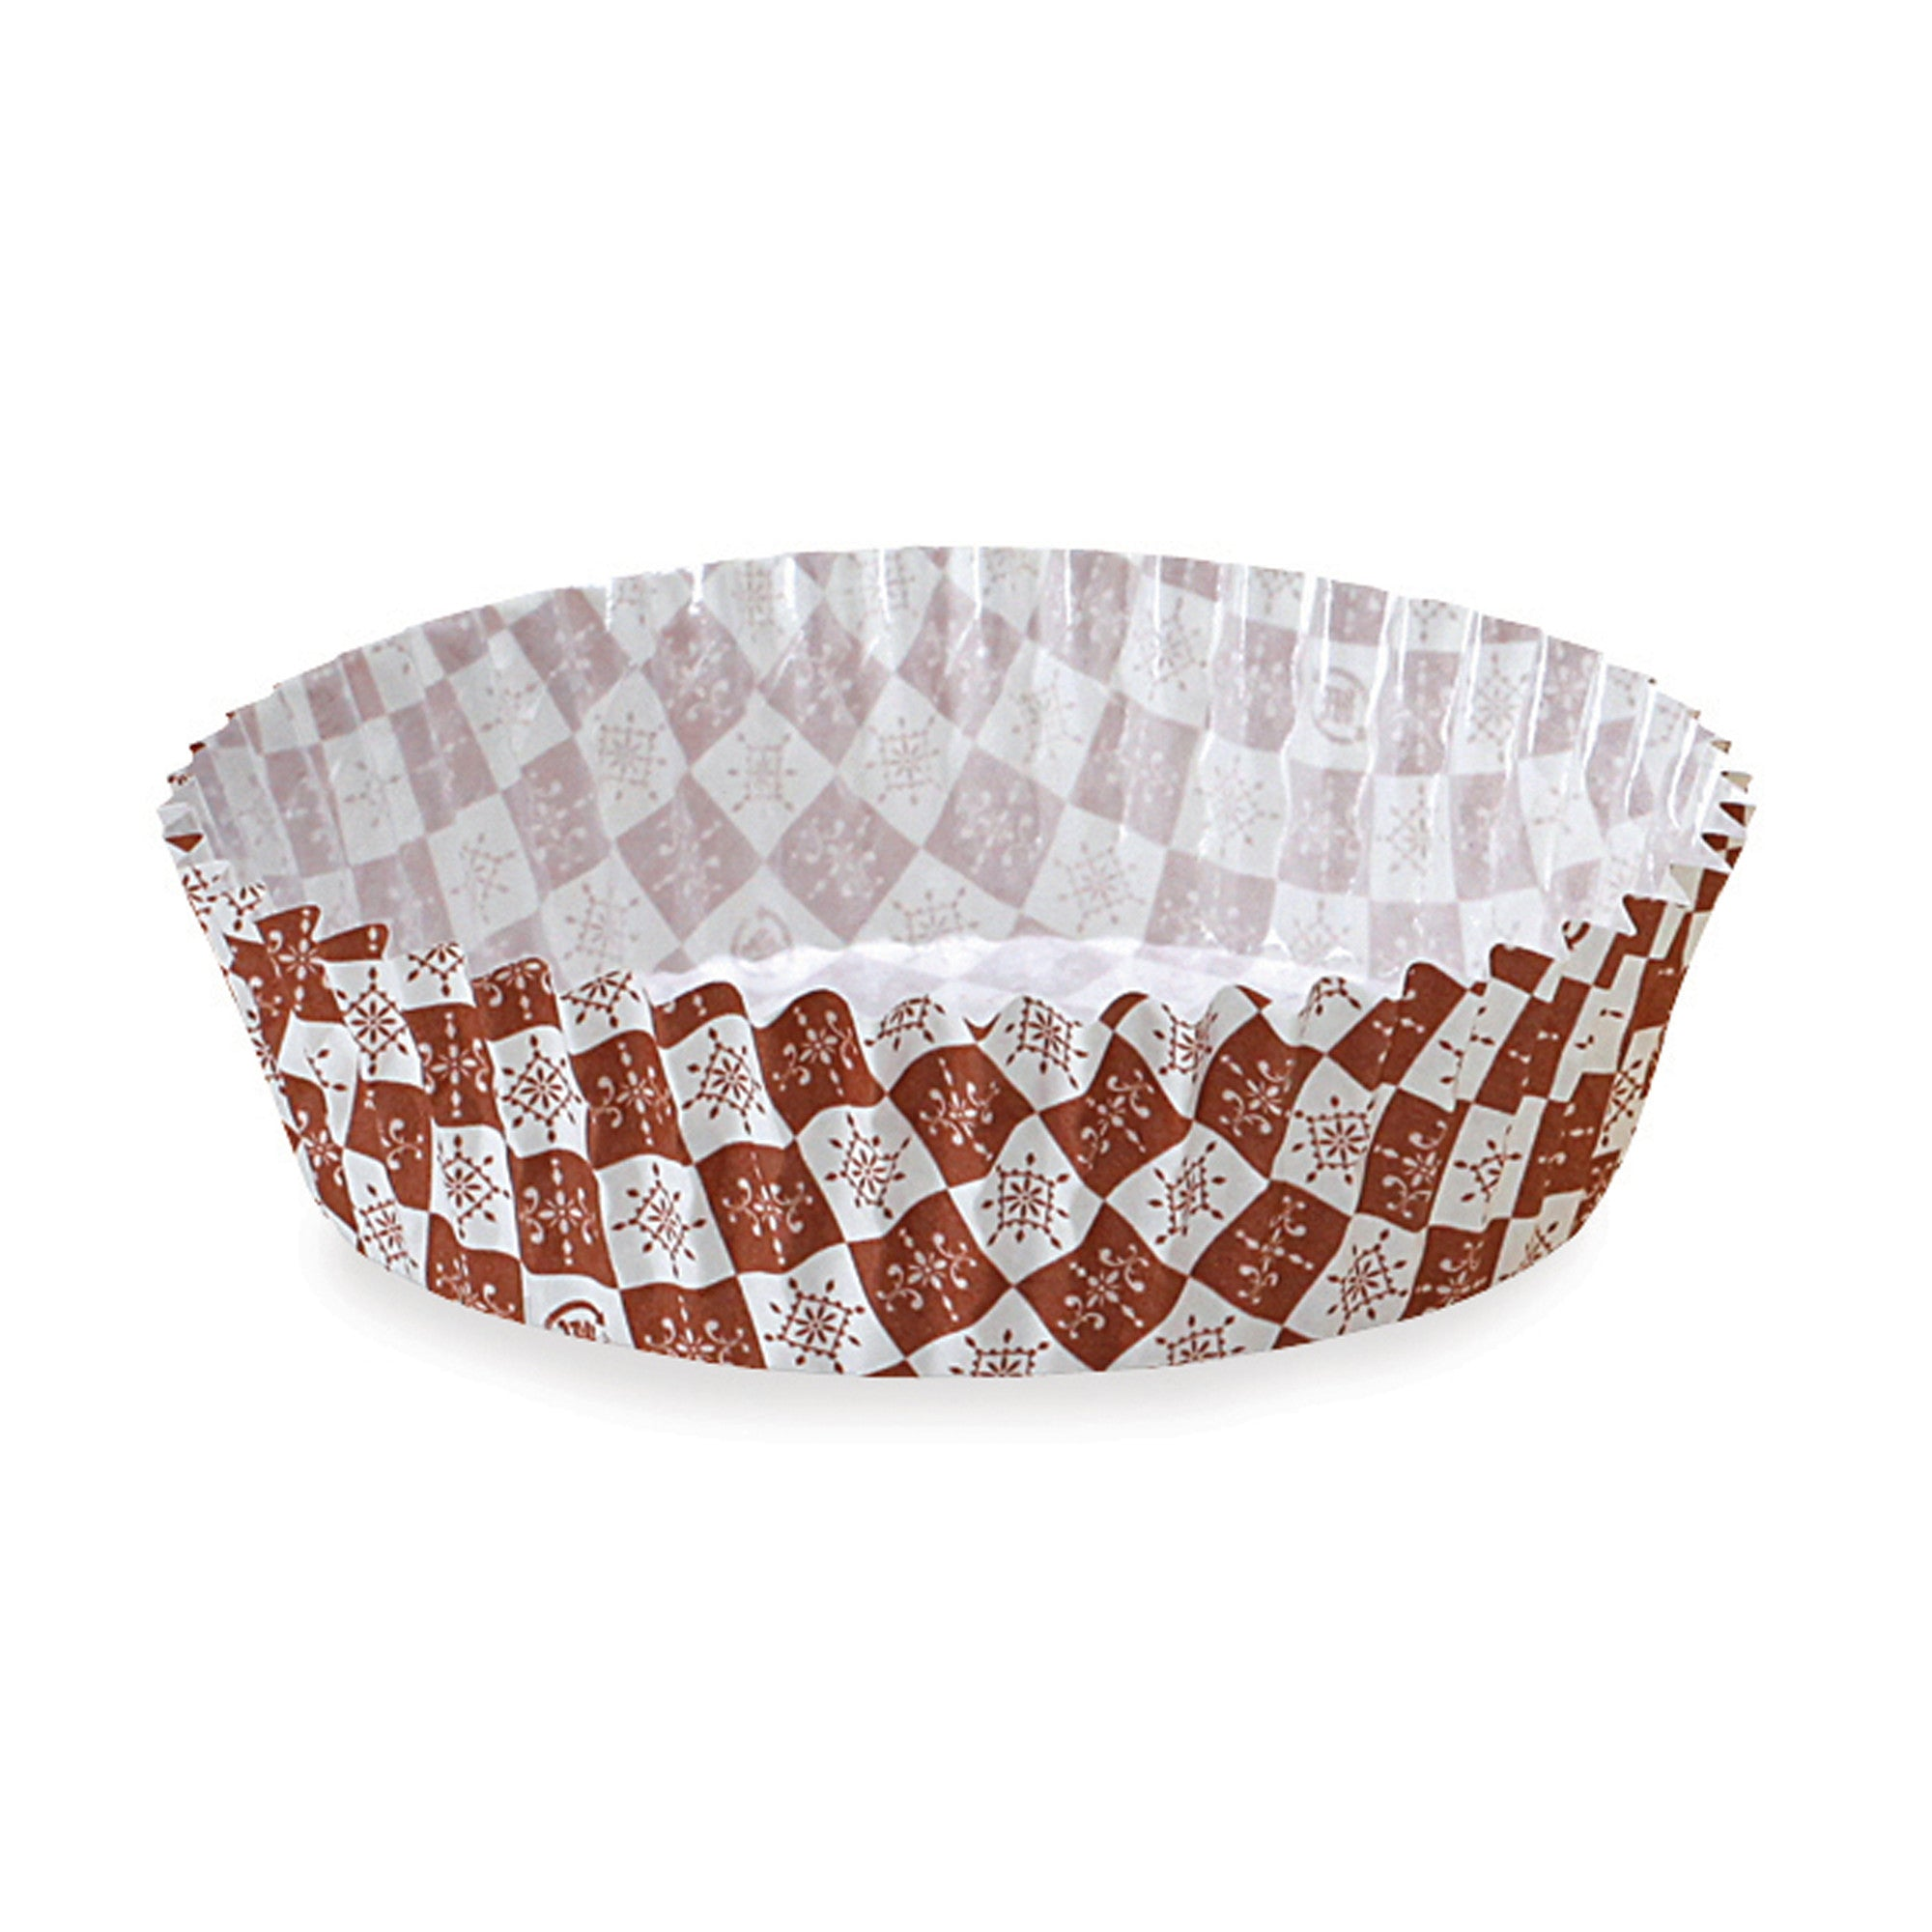 Ruffled Baking Cups, PTC09020B - Welcome Home Brands